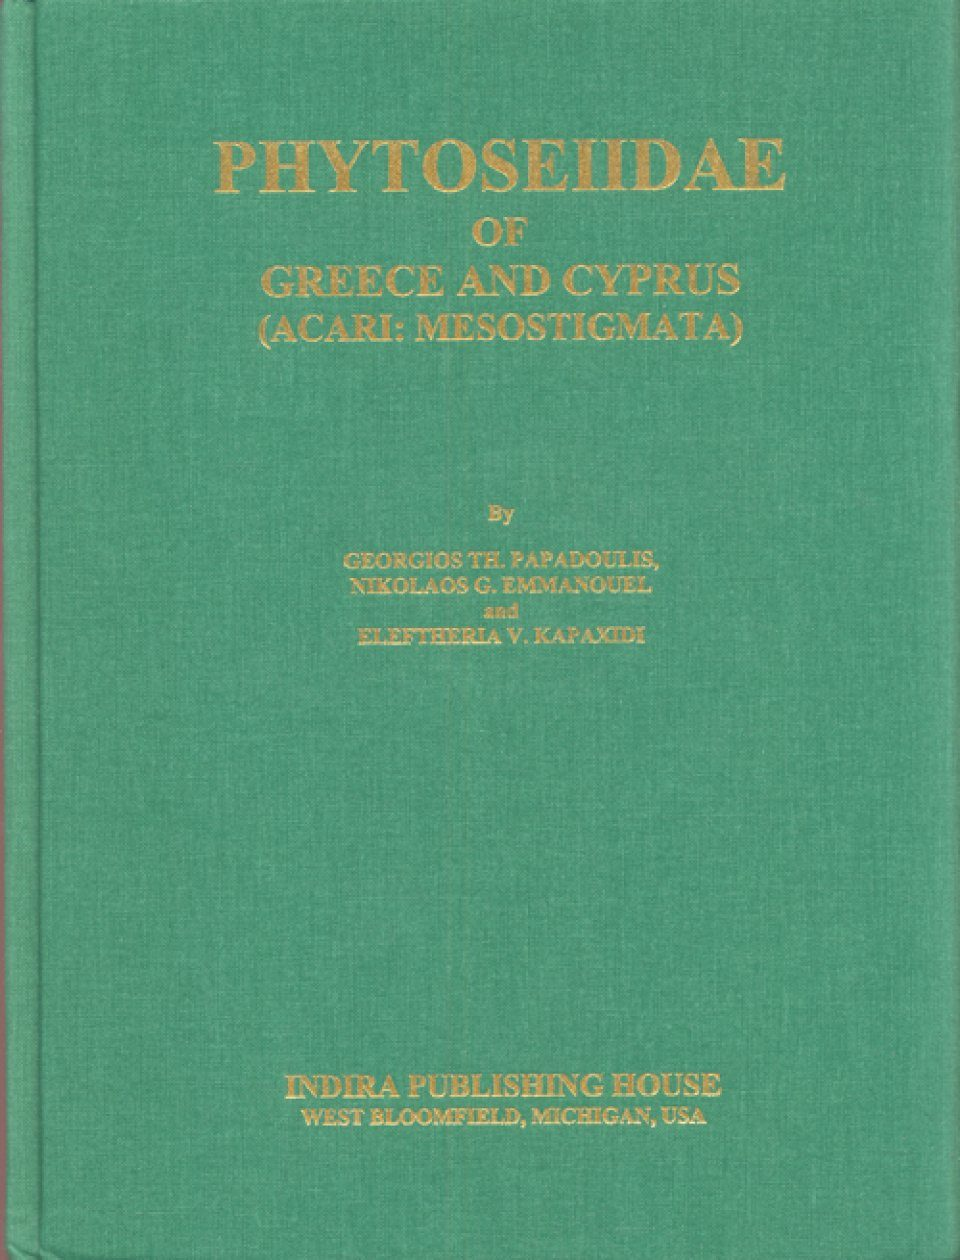 Phytoseiidae of Greece and Cyprus